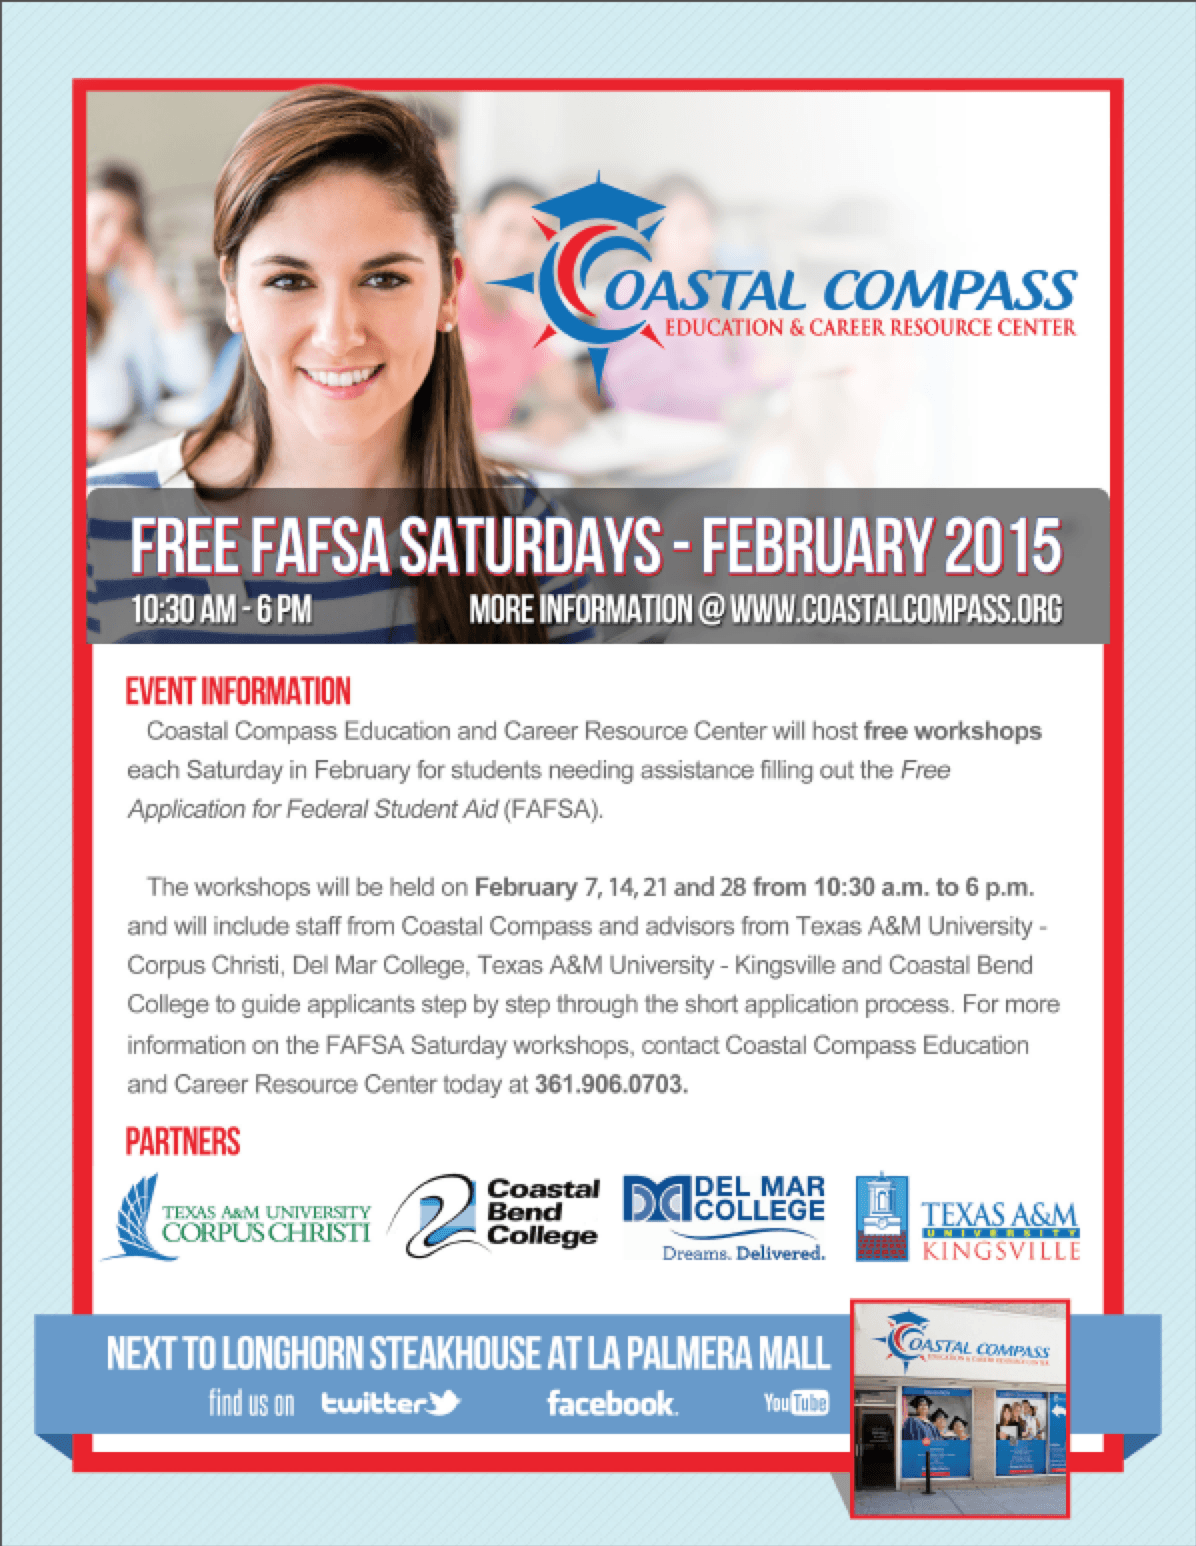 FAFSA Saturdays Return to Coastal Compass This February